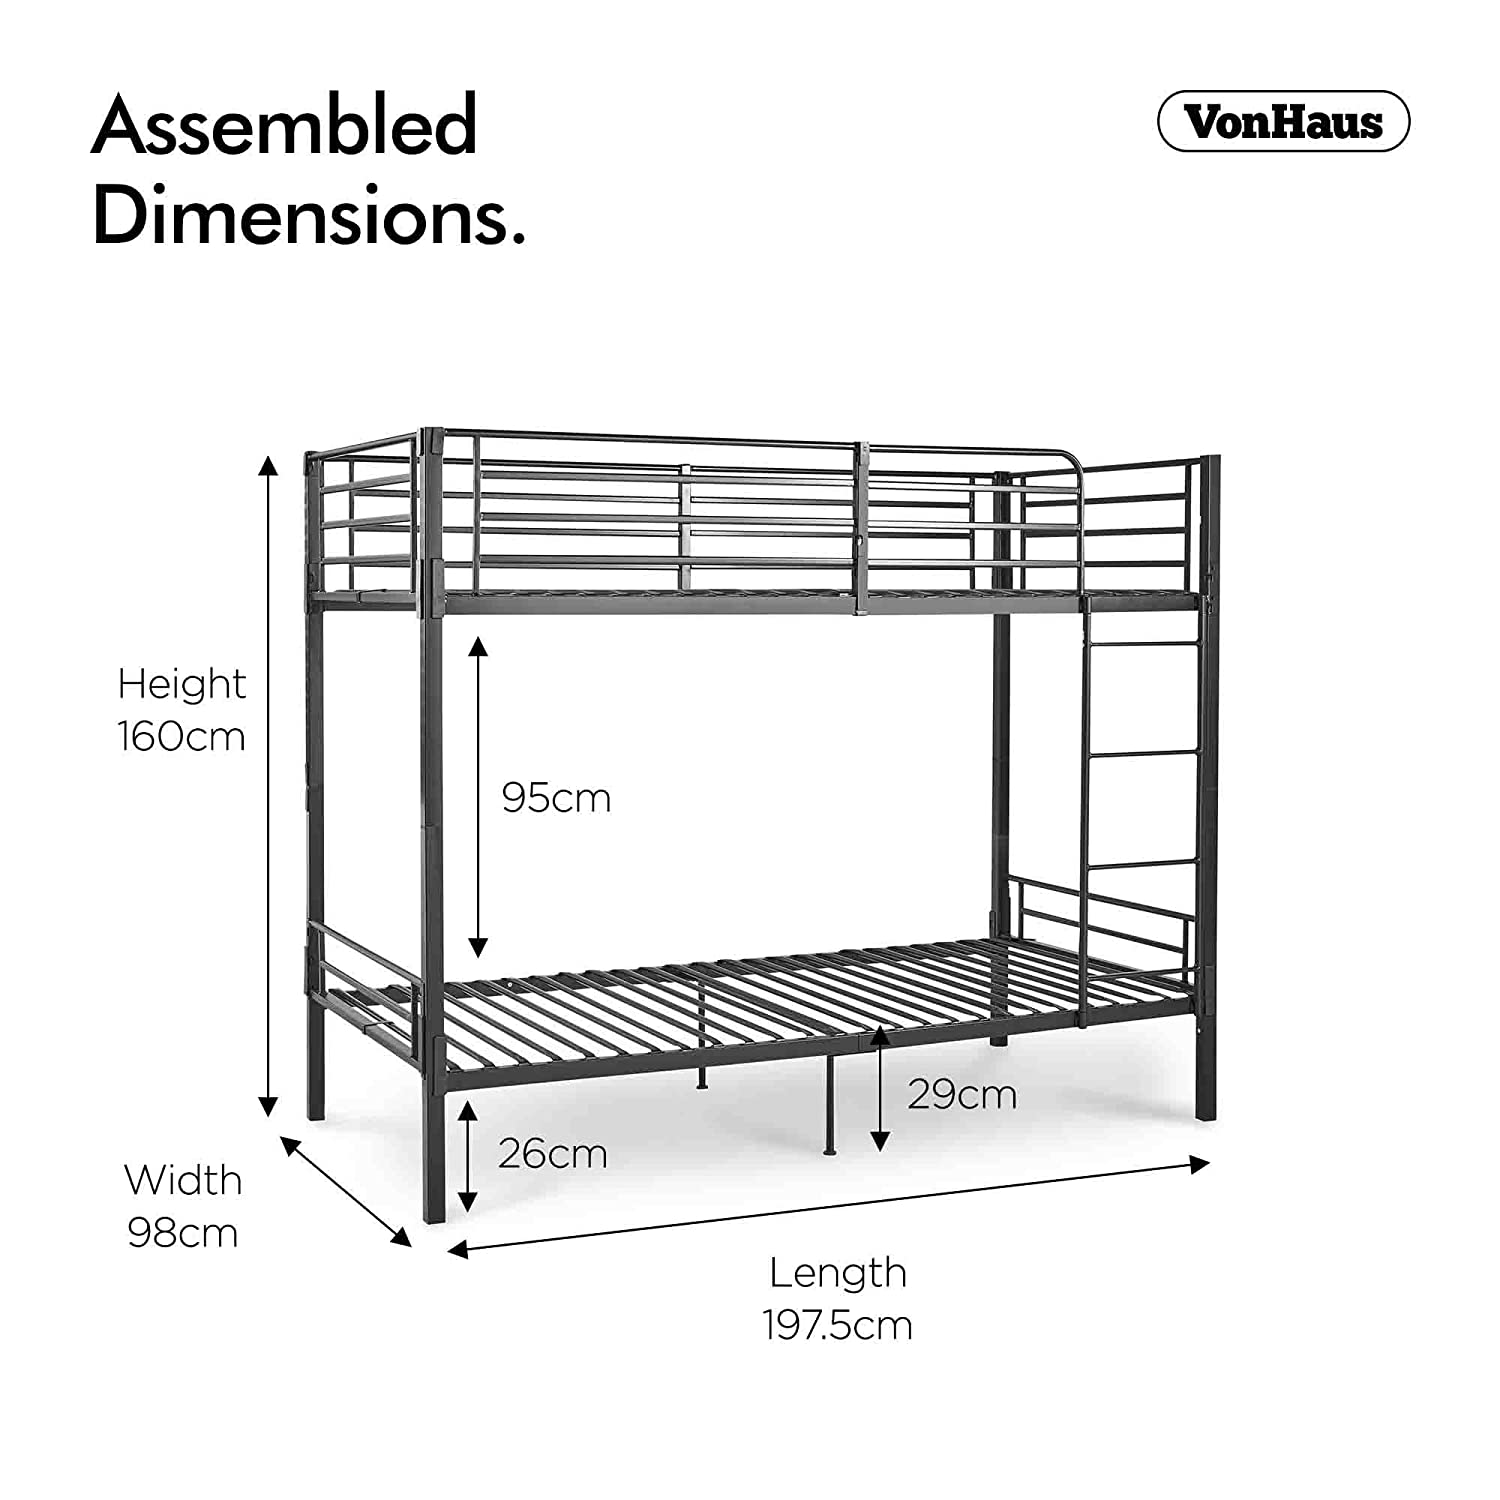 Vonhaus Bunk Bed Frame No Screw Bolt Construction For Easy